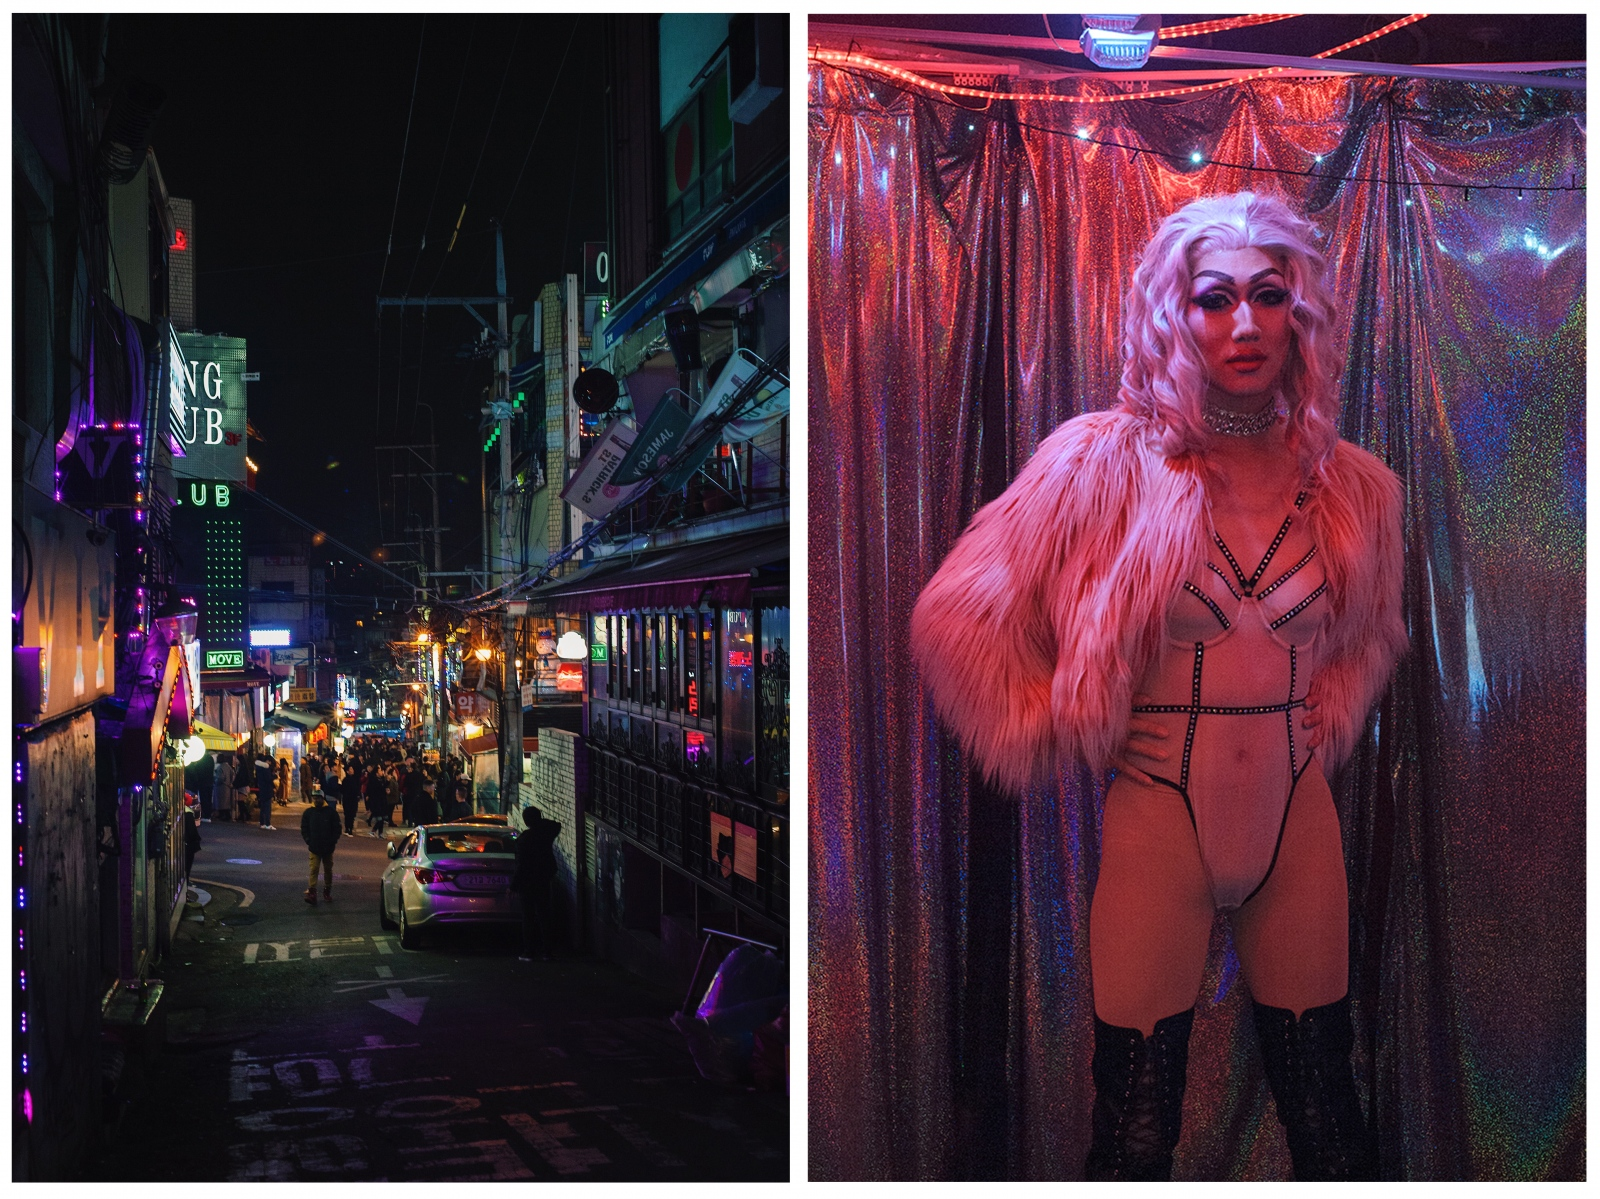 """""""My drag motivates me to continue my craft and help others who feel like they are different and don't belong."""" Performer Eric Shin (right, b. 1996) as his drag personality Erica Balenciaga at The Rabbit Hole in Itaewon, Seoul. Shin comes from a Korean Jehovah's Witness household and is a student on leave from NYU Shanghai. While at NYU, Shin started doing drag as a way of artistic expression and escaping from struggles. Eventually, his parents and elders of the congregation discovered his activities, disfellowshipped him, causing his family members to disassociate as well. Shin's parents cut off all financial support and communication. Shin performs at drag venues in Itaewon. Homo Hill, Itaewon, is pictured on the left."""